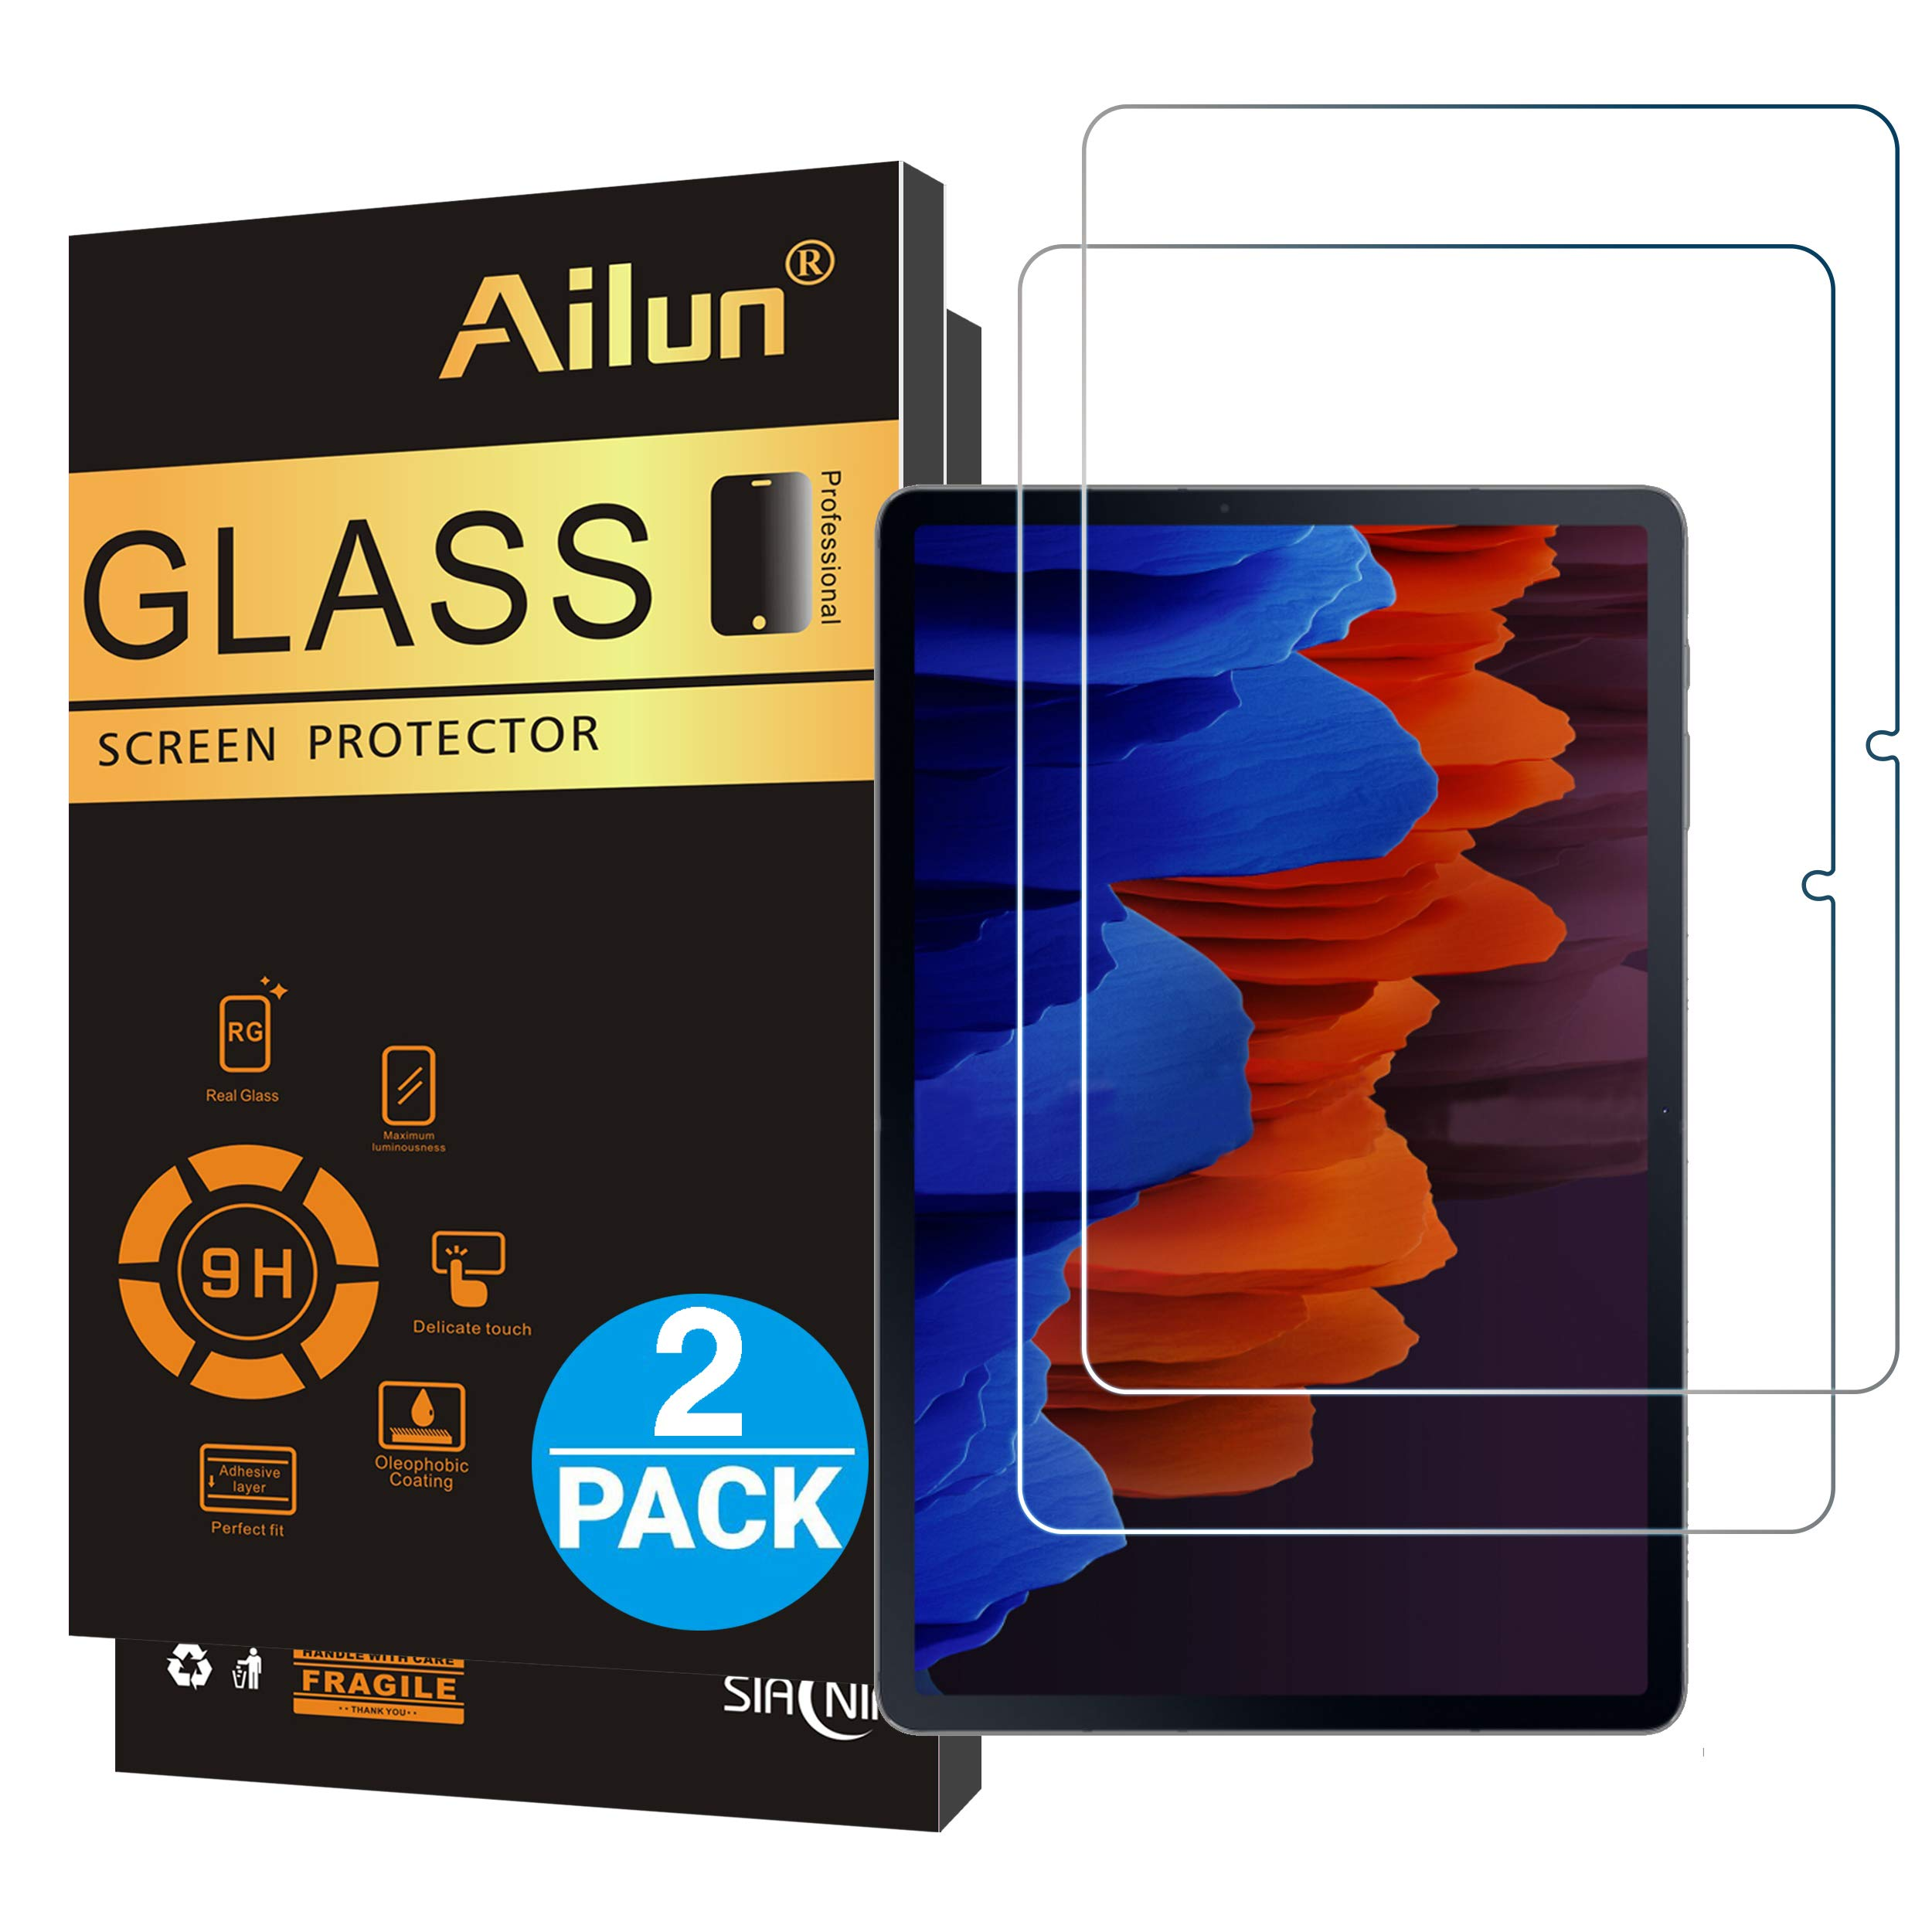 Ailun Screen Protector For Galaxy Tab S7 Plus,12.4 inch 2Pack,Galaxy Tab S7+Tempered Glass 9H Hardness 2.5D Edge Ultra Clear Anti Scratch Case Friendly